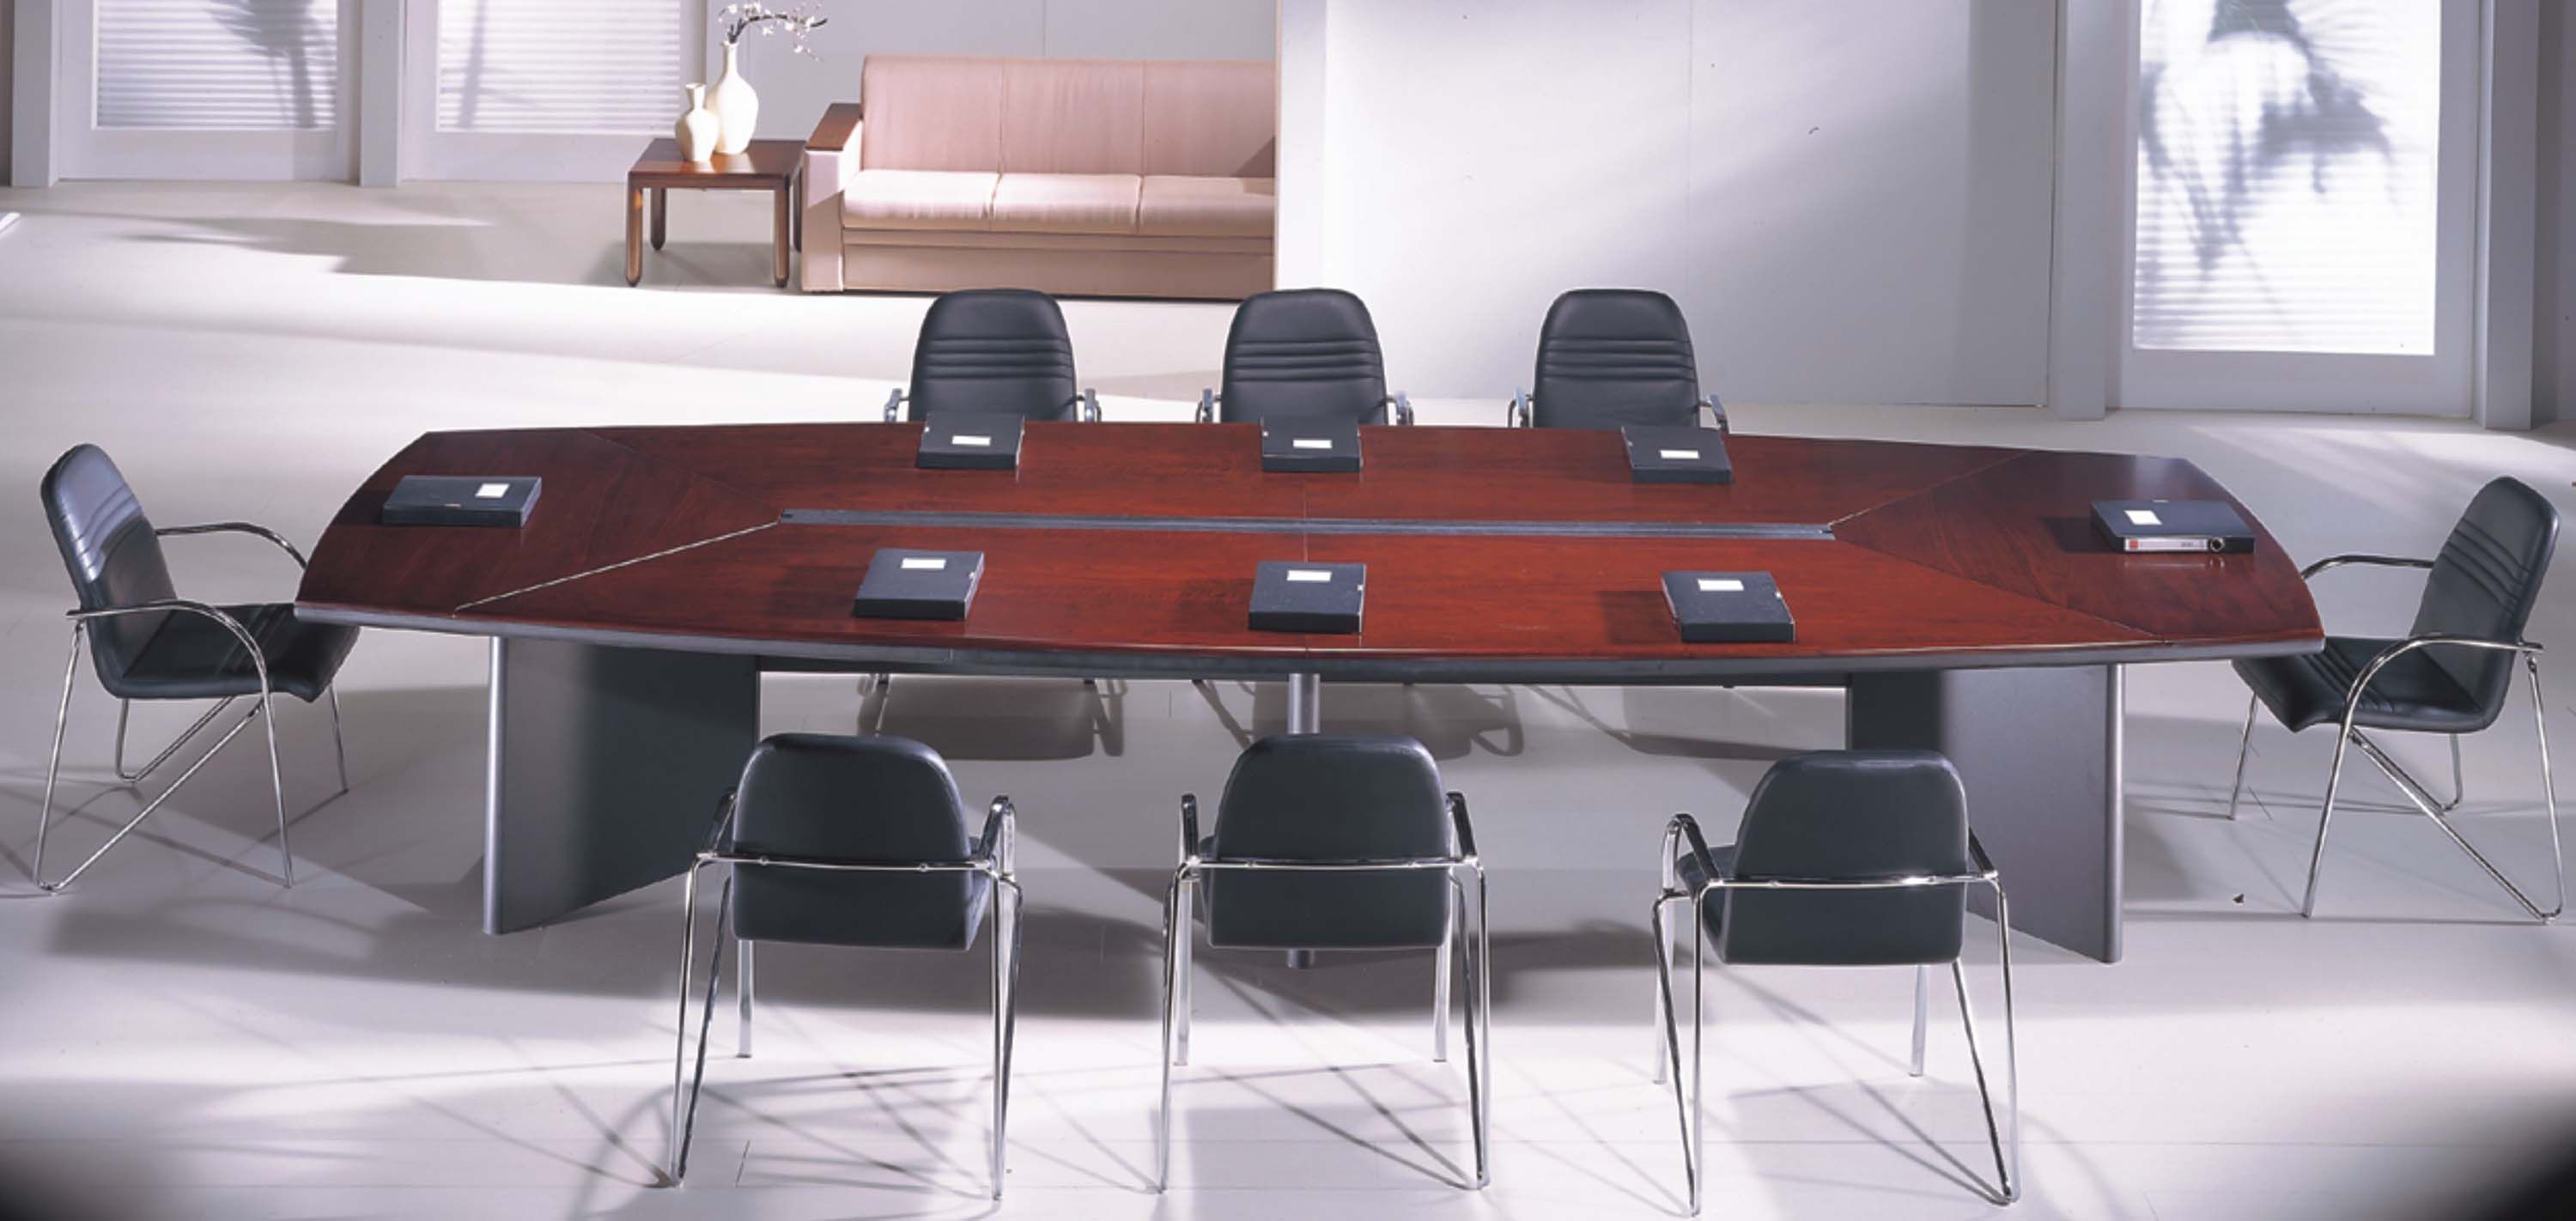 Cherry Conference Table Google Search Conference Room - Small office conference table and chairs